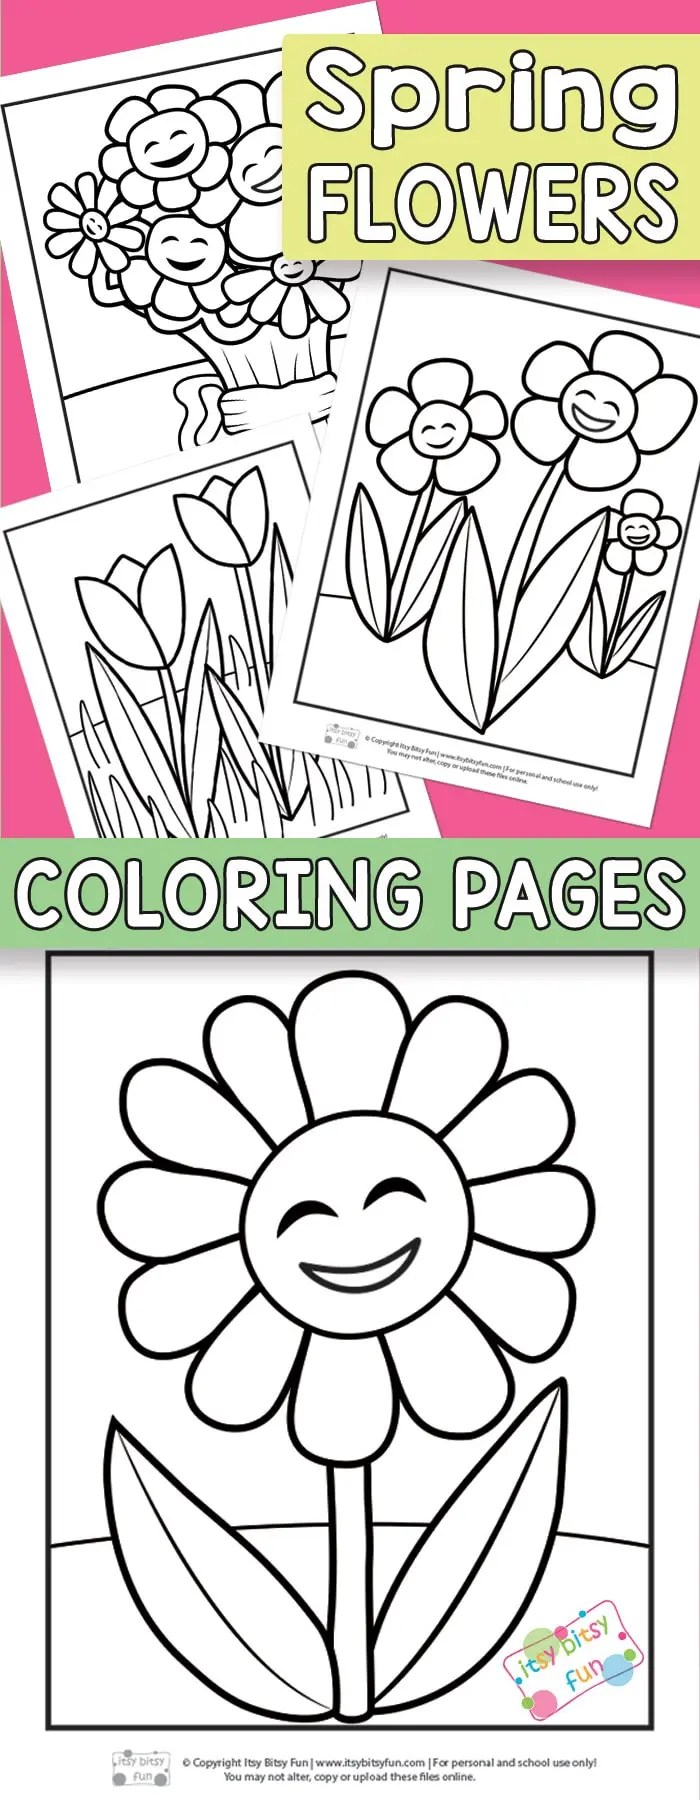 Flower Coloring Pages for Kids - Itsy Bitsy Fun | flower coloring pages preschool